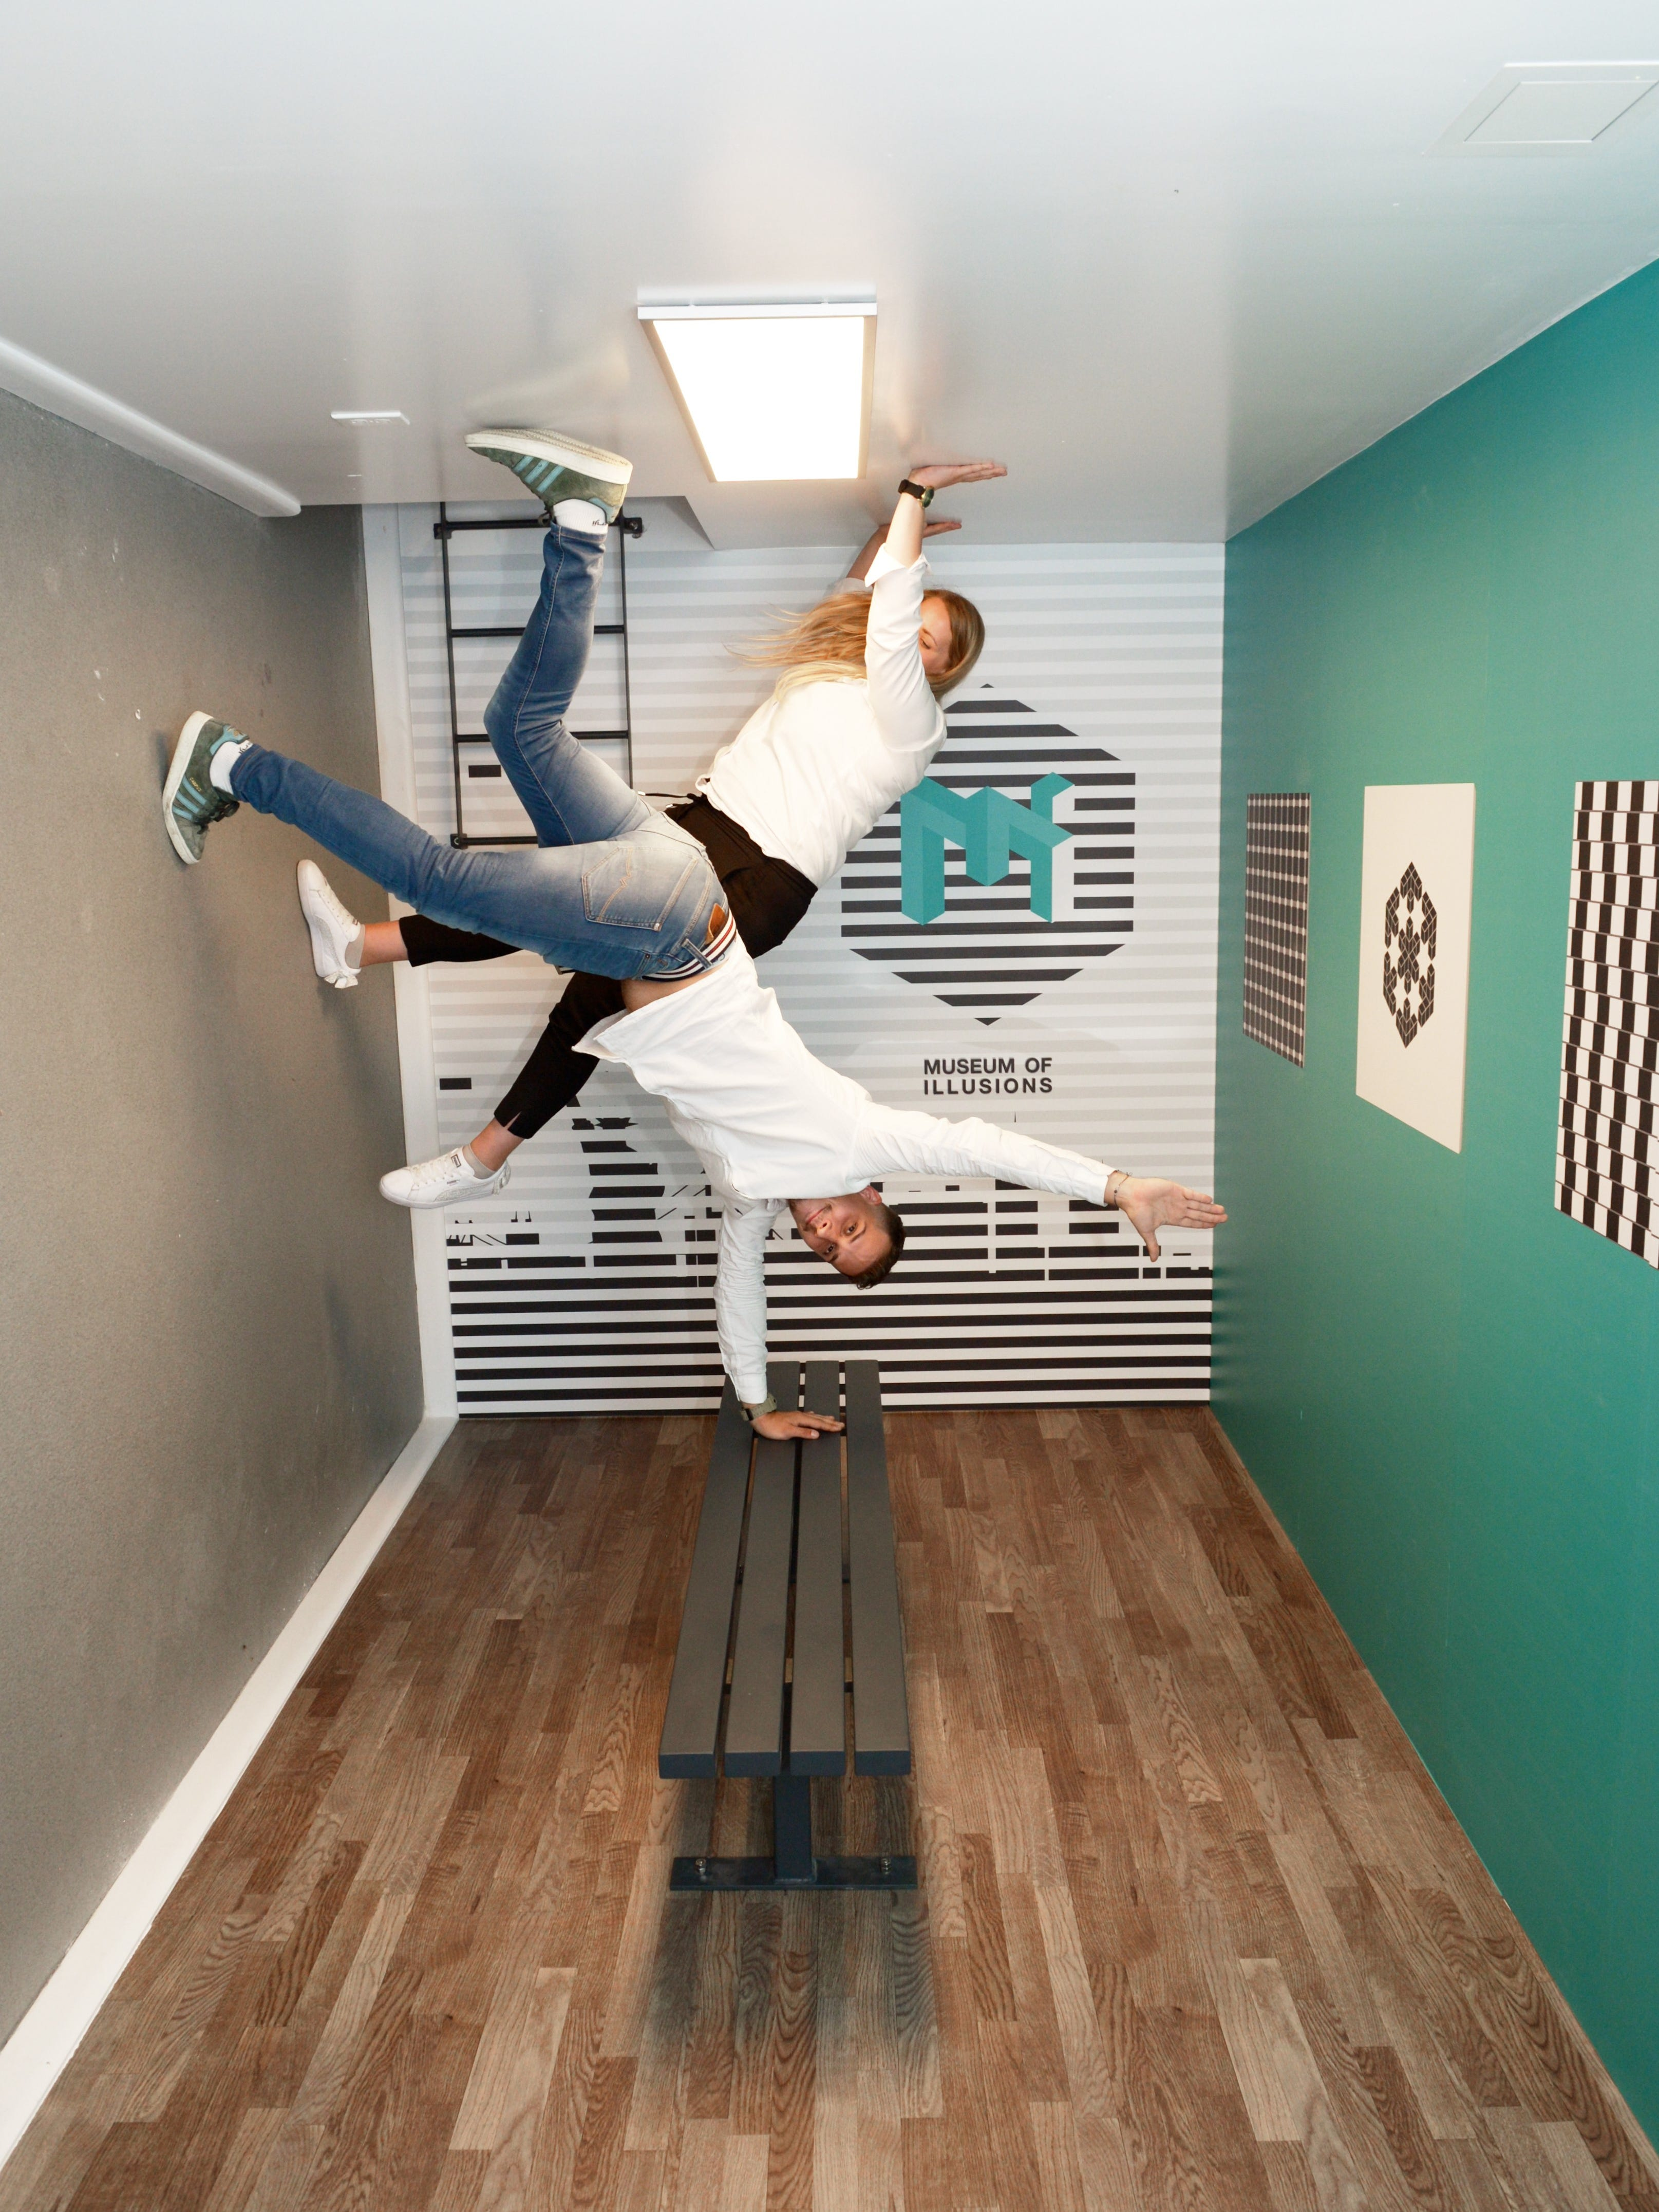 Family Friendly Museum Of Illusions Opens In New York City